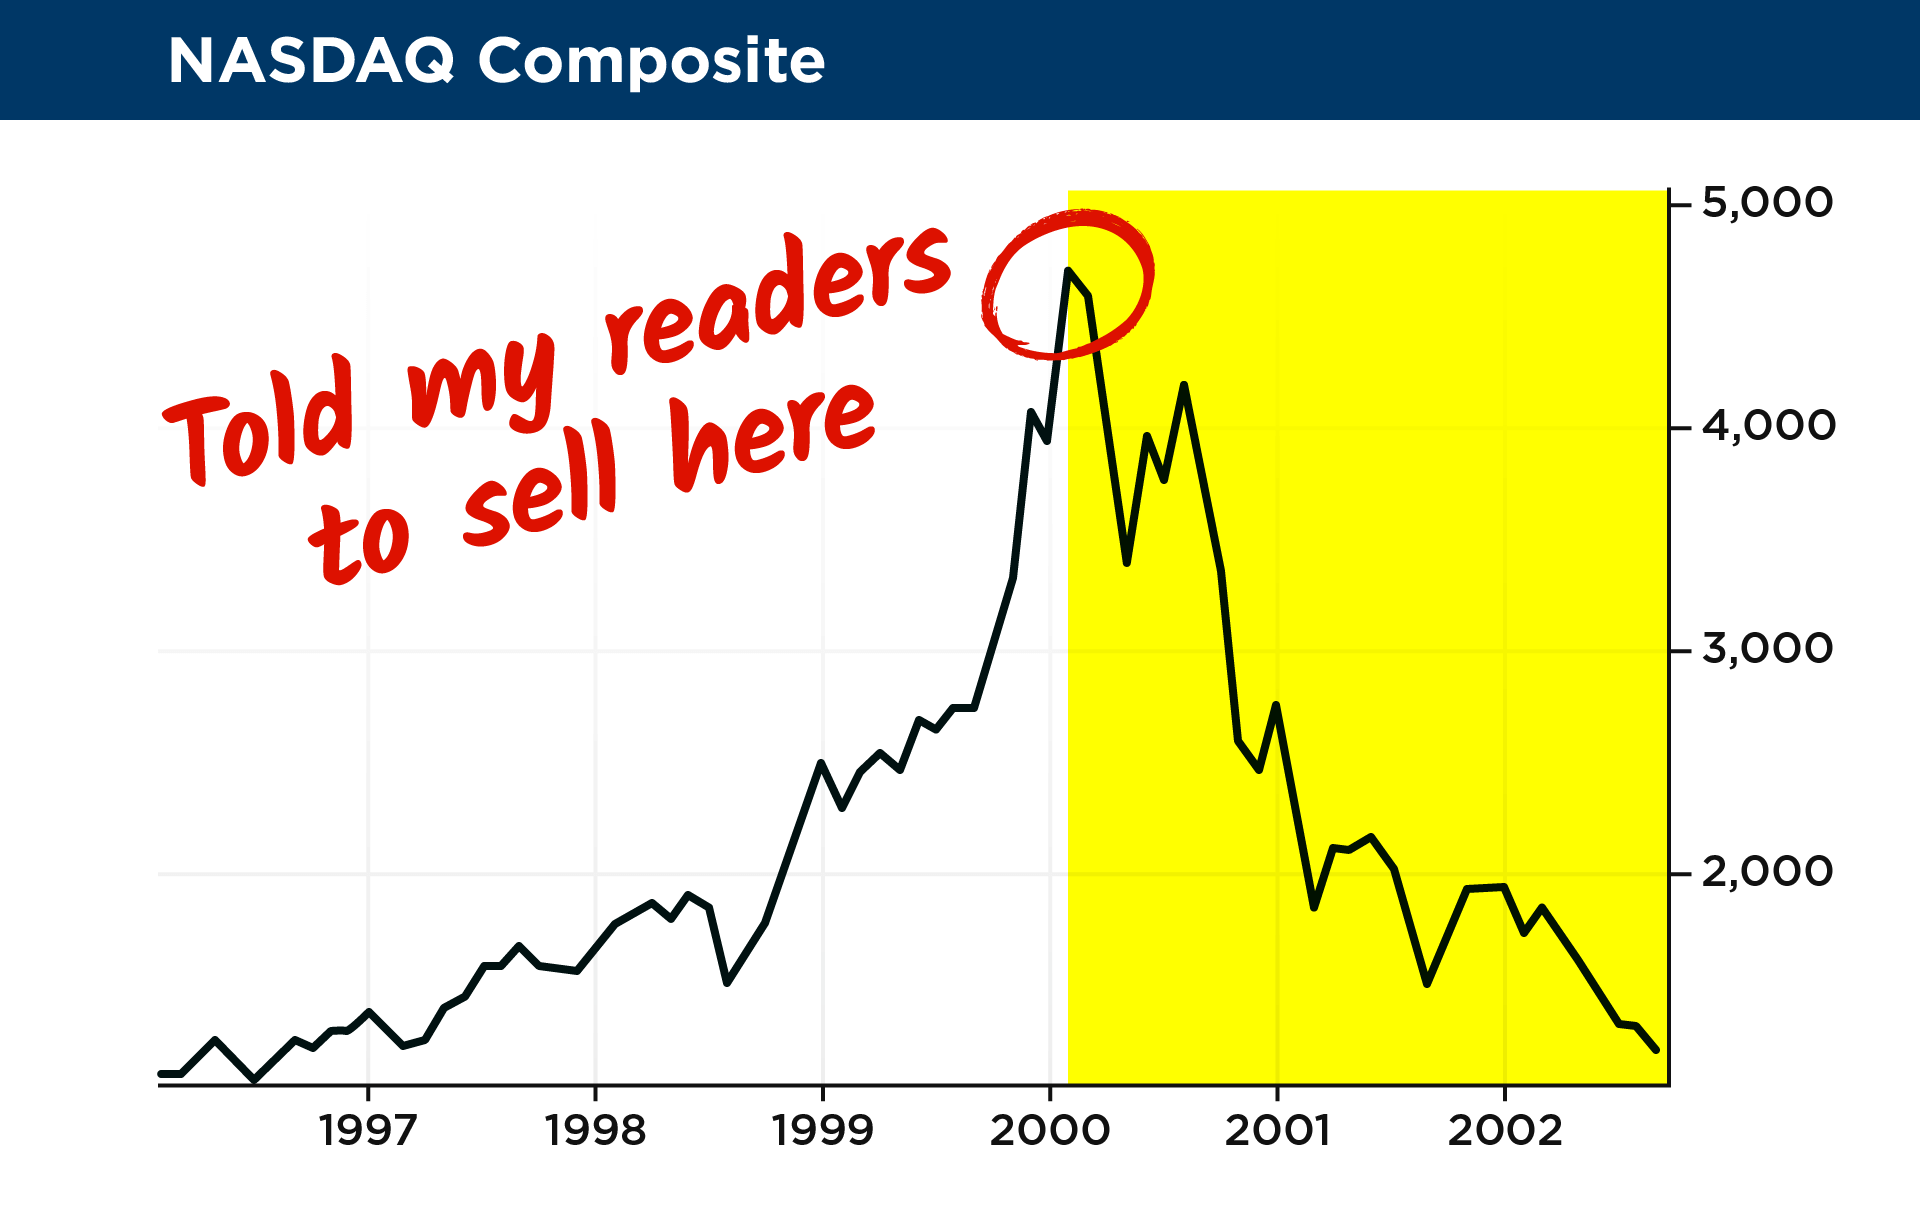 18 nasdaq composite 42xg and again in 2002 i developed a script for the housing boom that had just begun i told my readers the 1 place to invest was the housing market and biocorpaavc Images